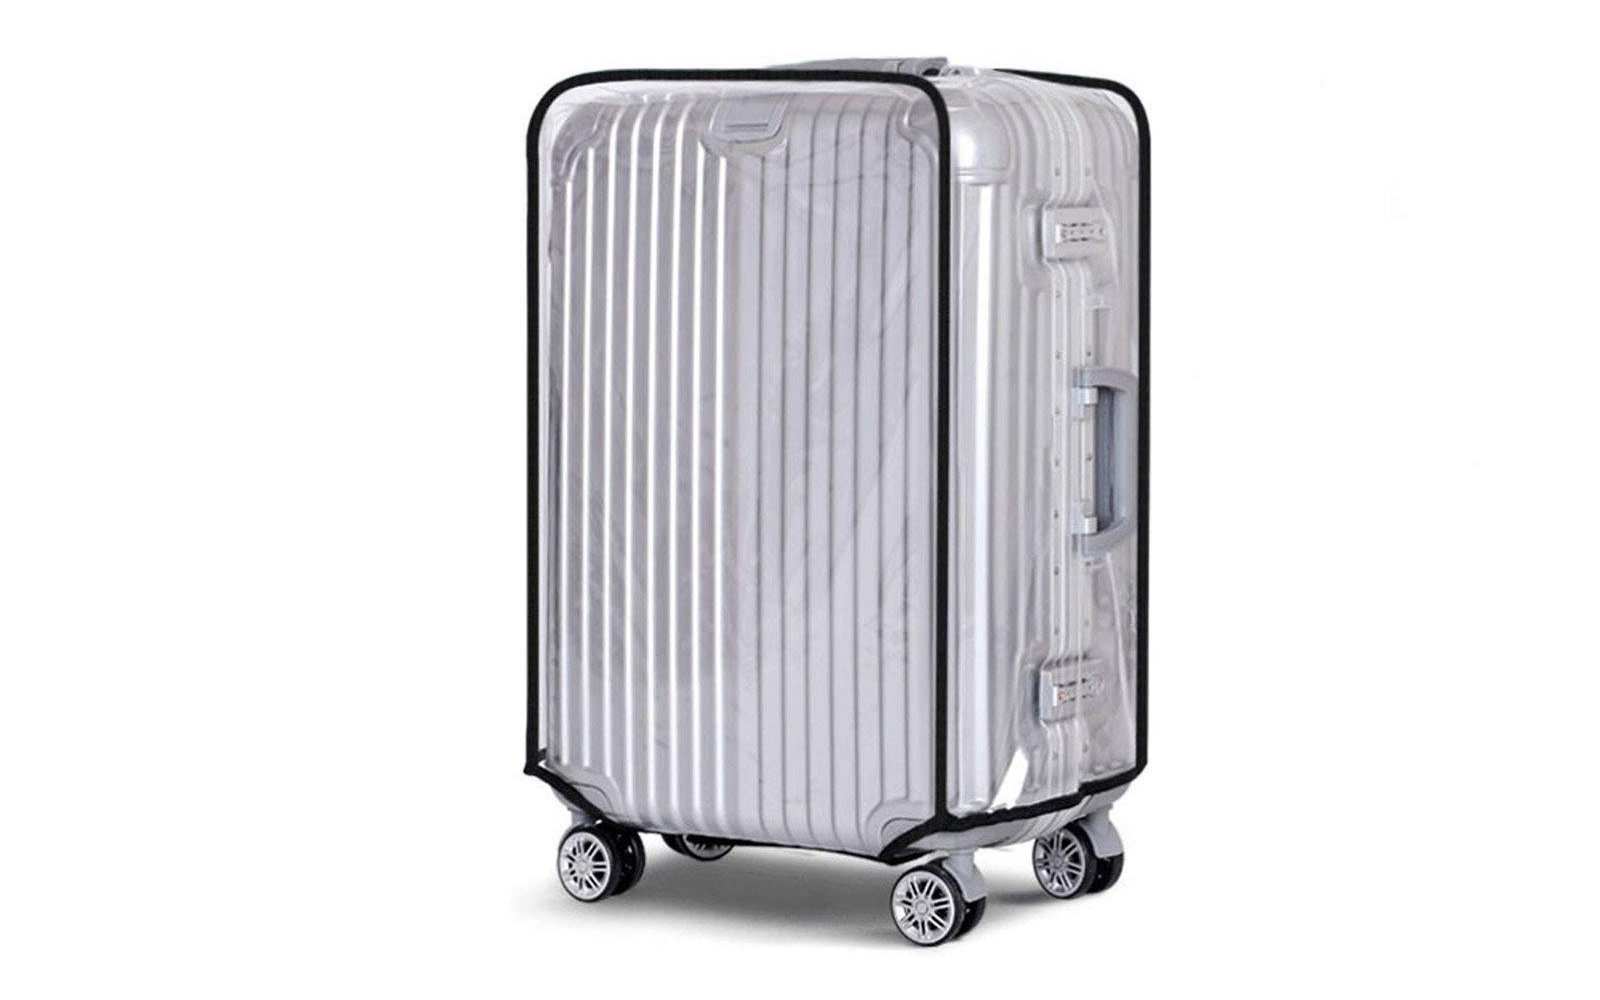 a417ef034d59 The Best Luggage Covers for Protecting Your Suitcase | Travel + Leisure